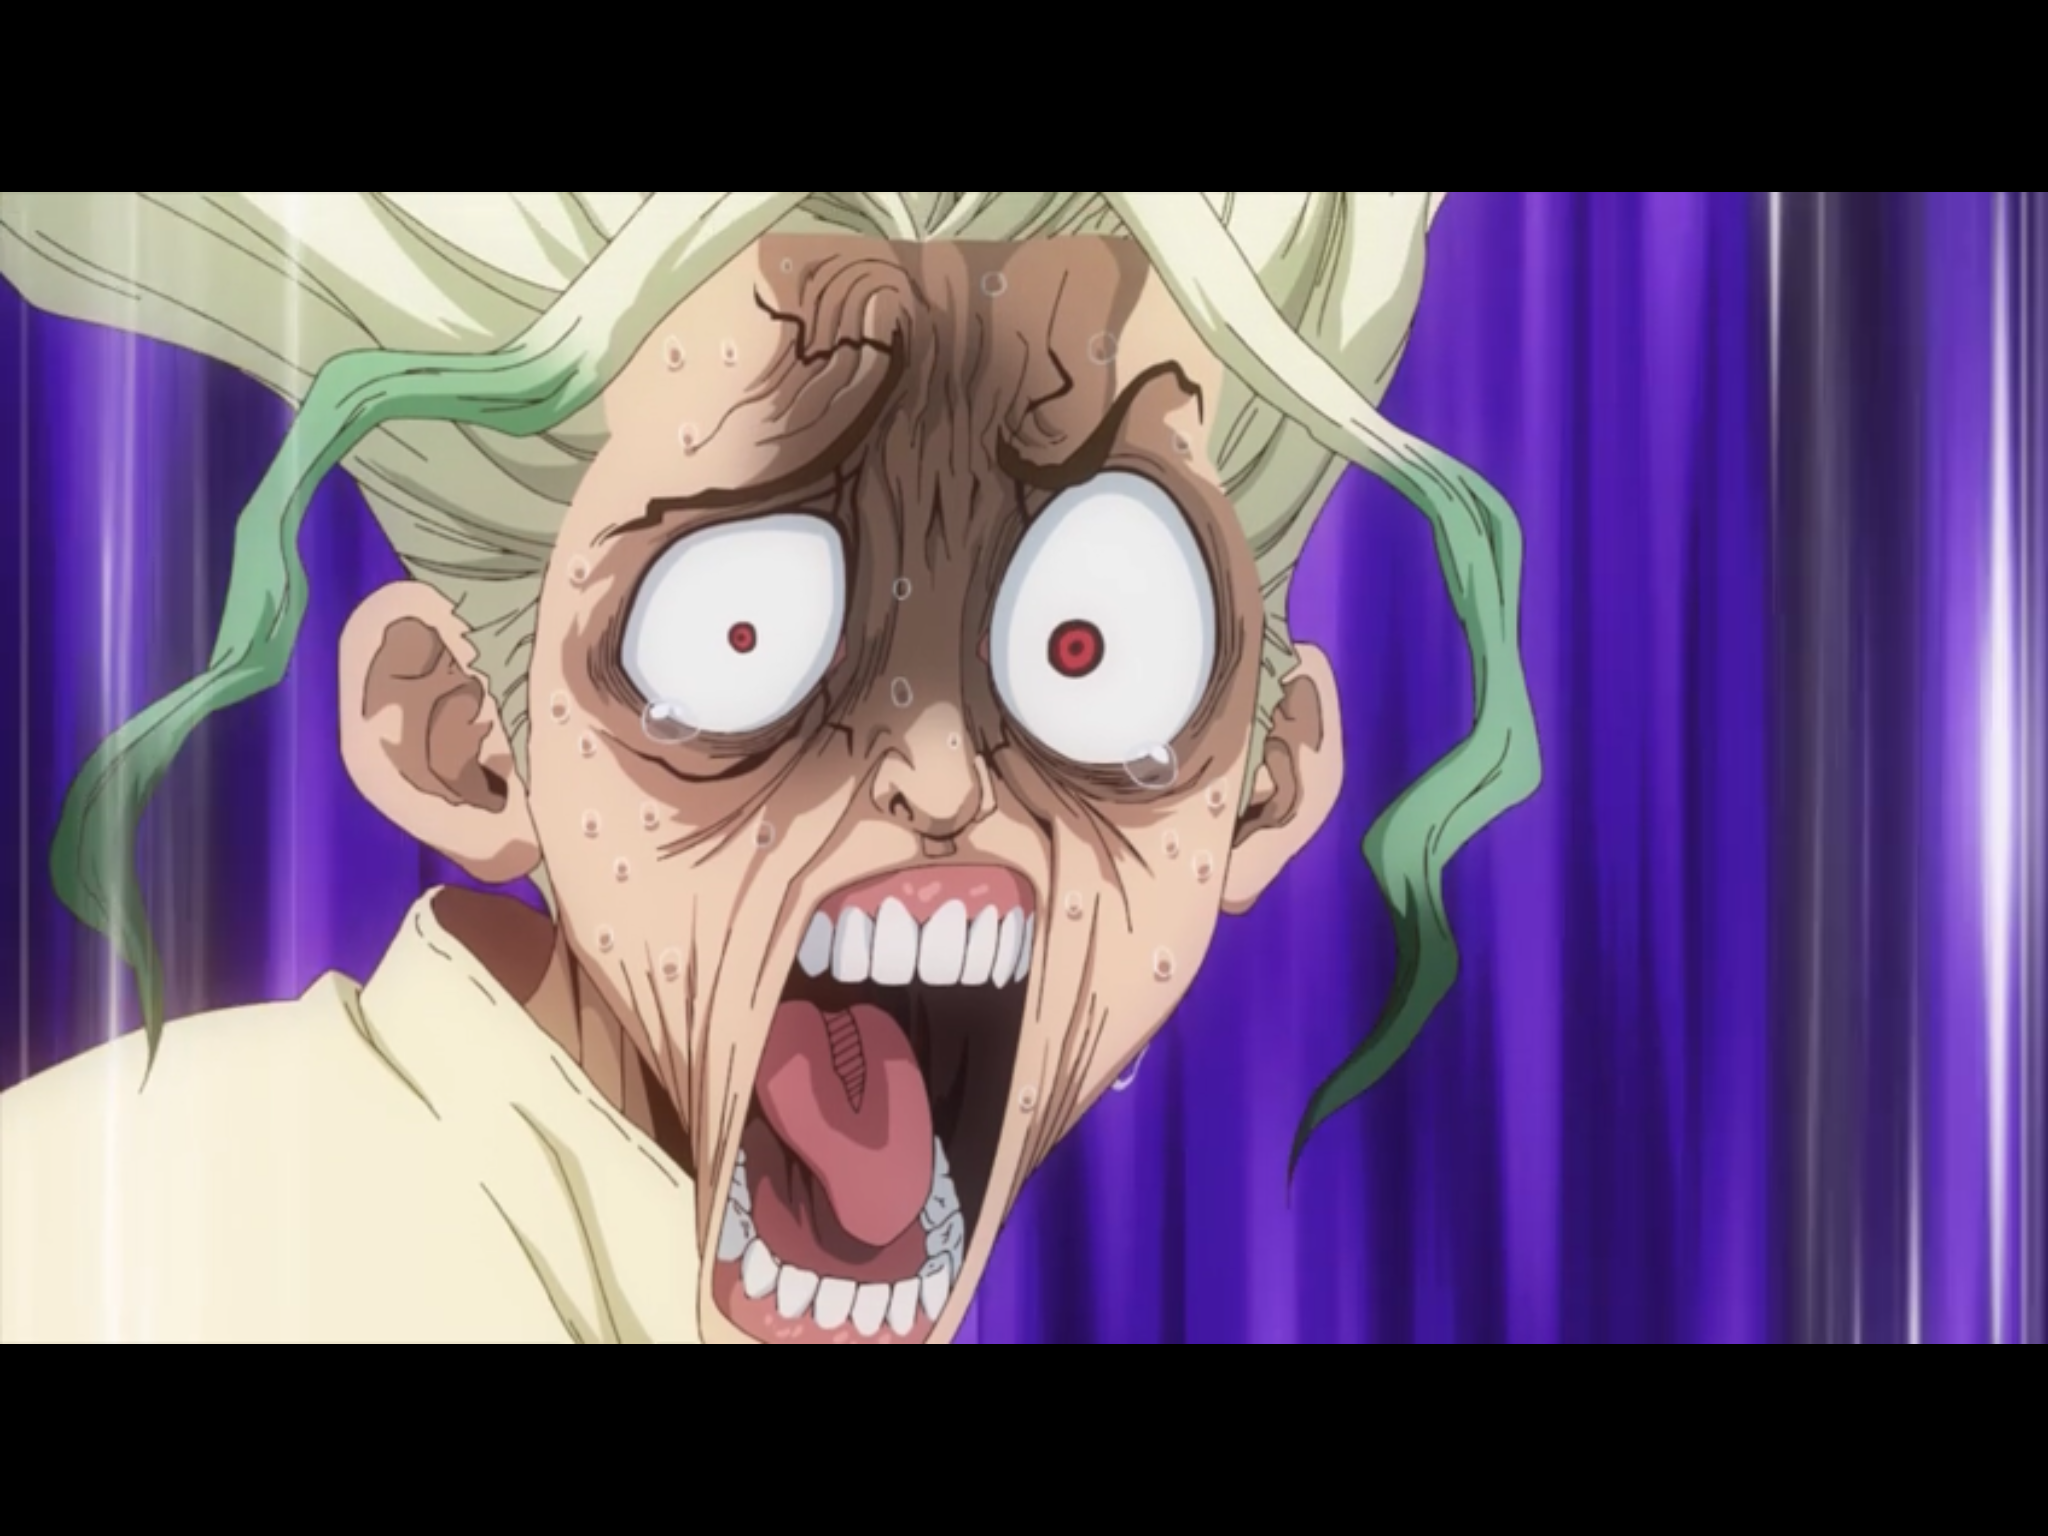 Episode 3 Anime Anime Faces Expressions Anime Expressions